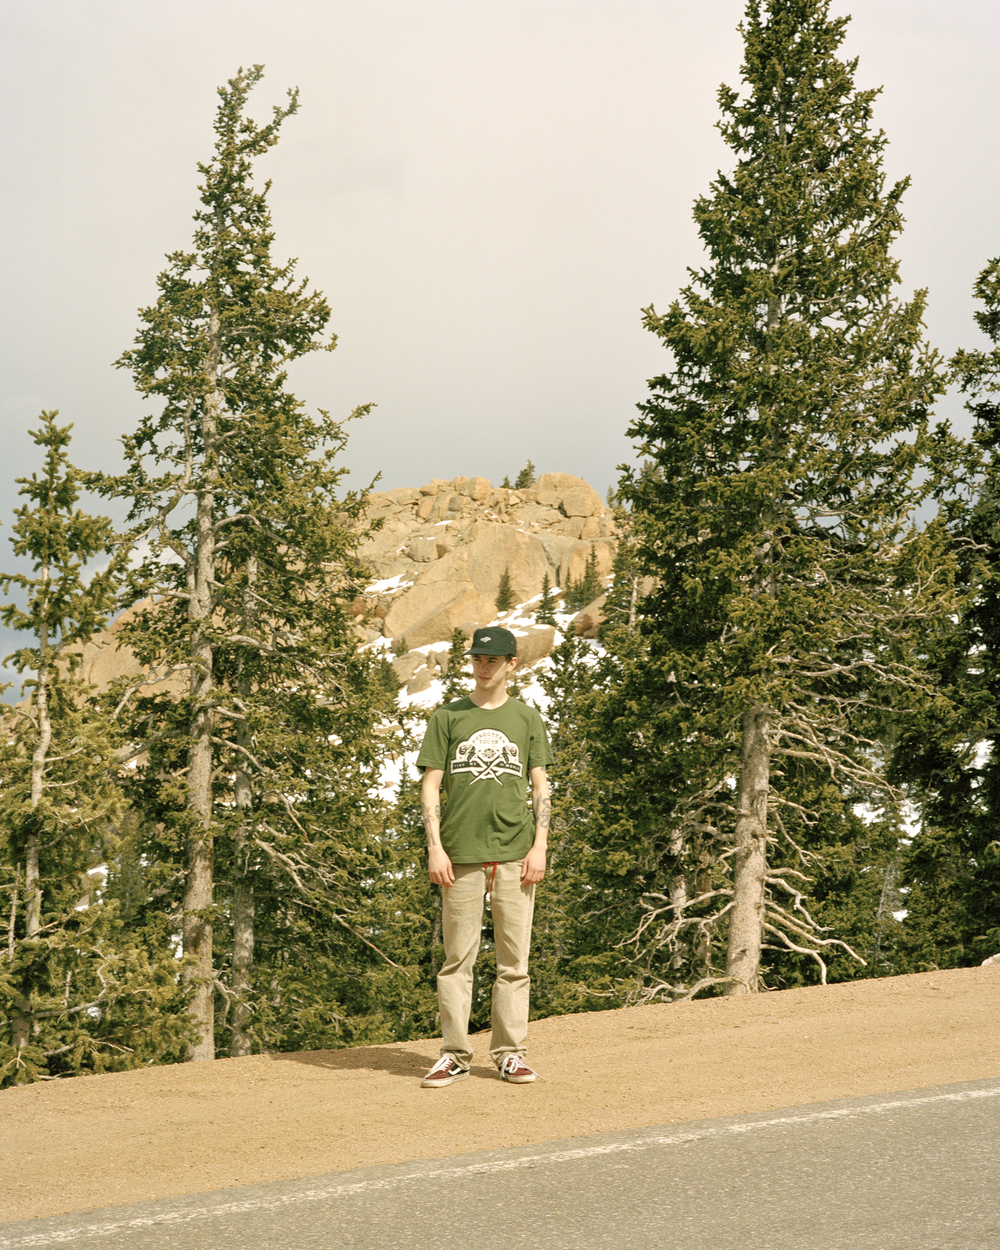 pat on pikes peak.jpg